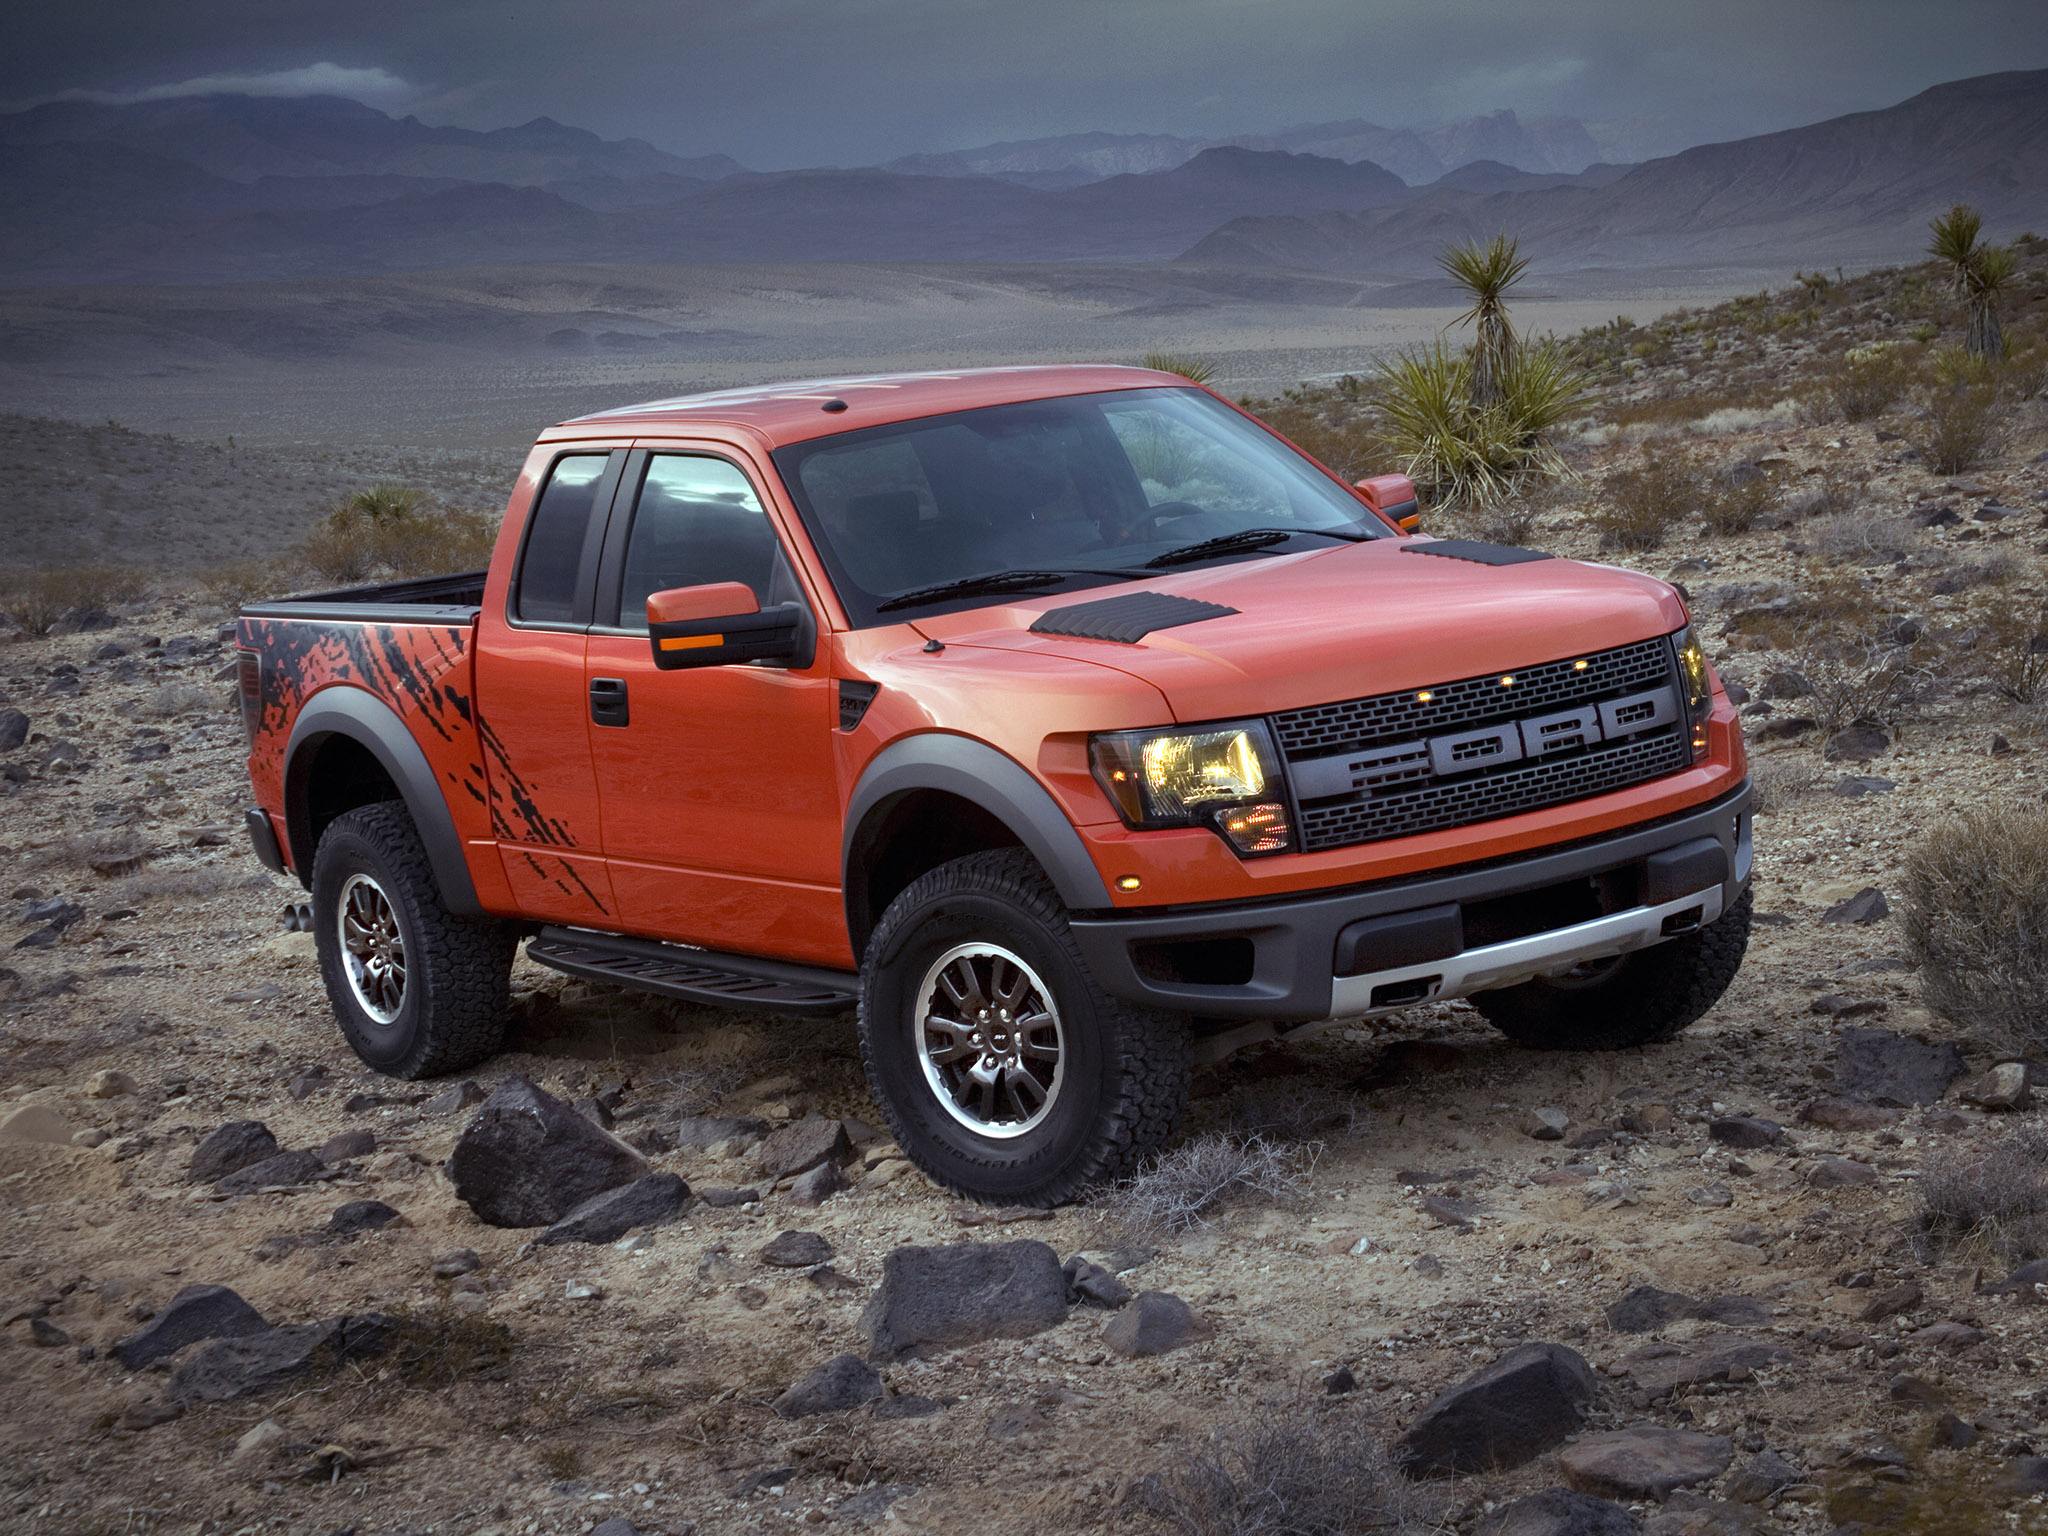 2008 Ford F 150 Raptor SVT 4x4 truck offroad wallpaper background 2048x1536